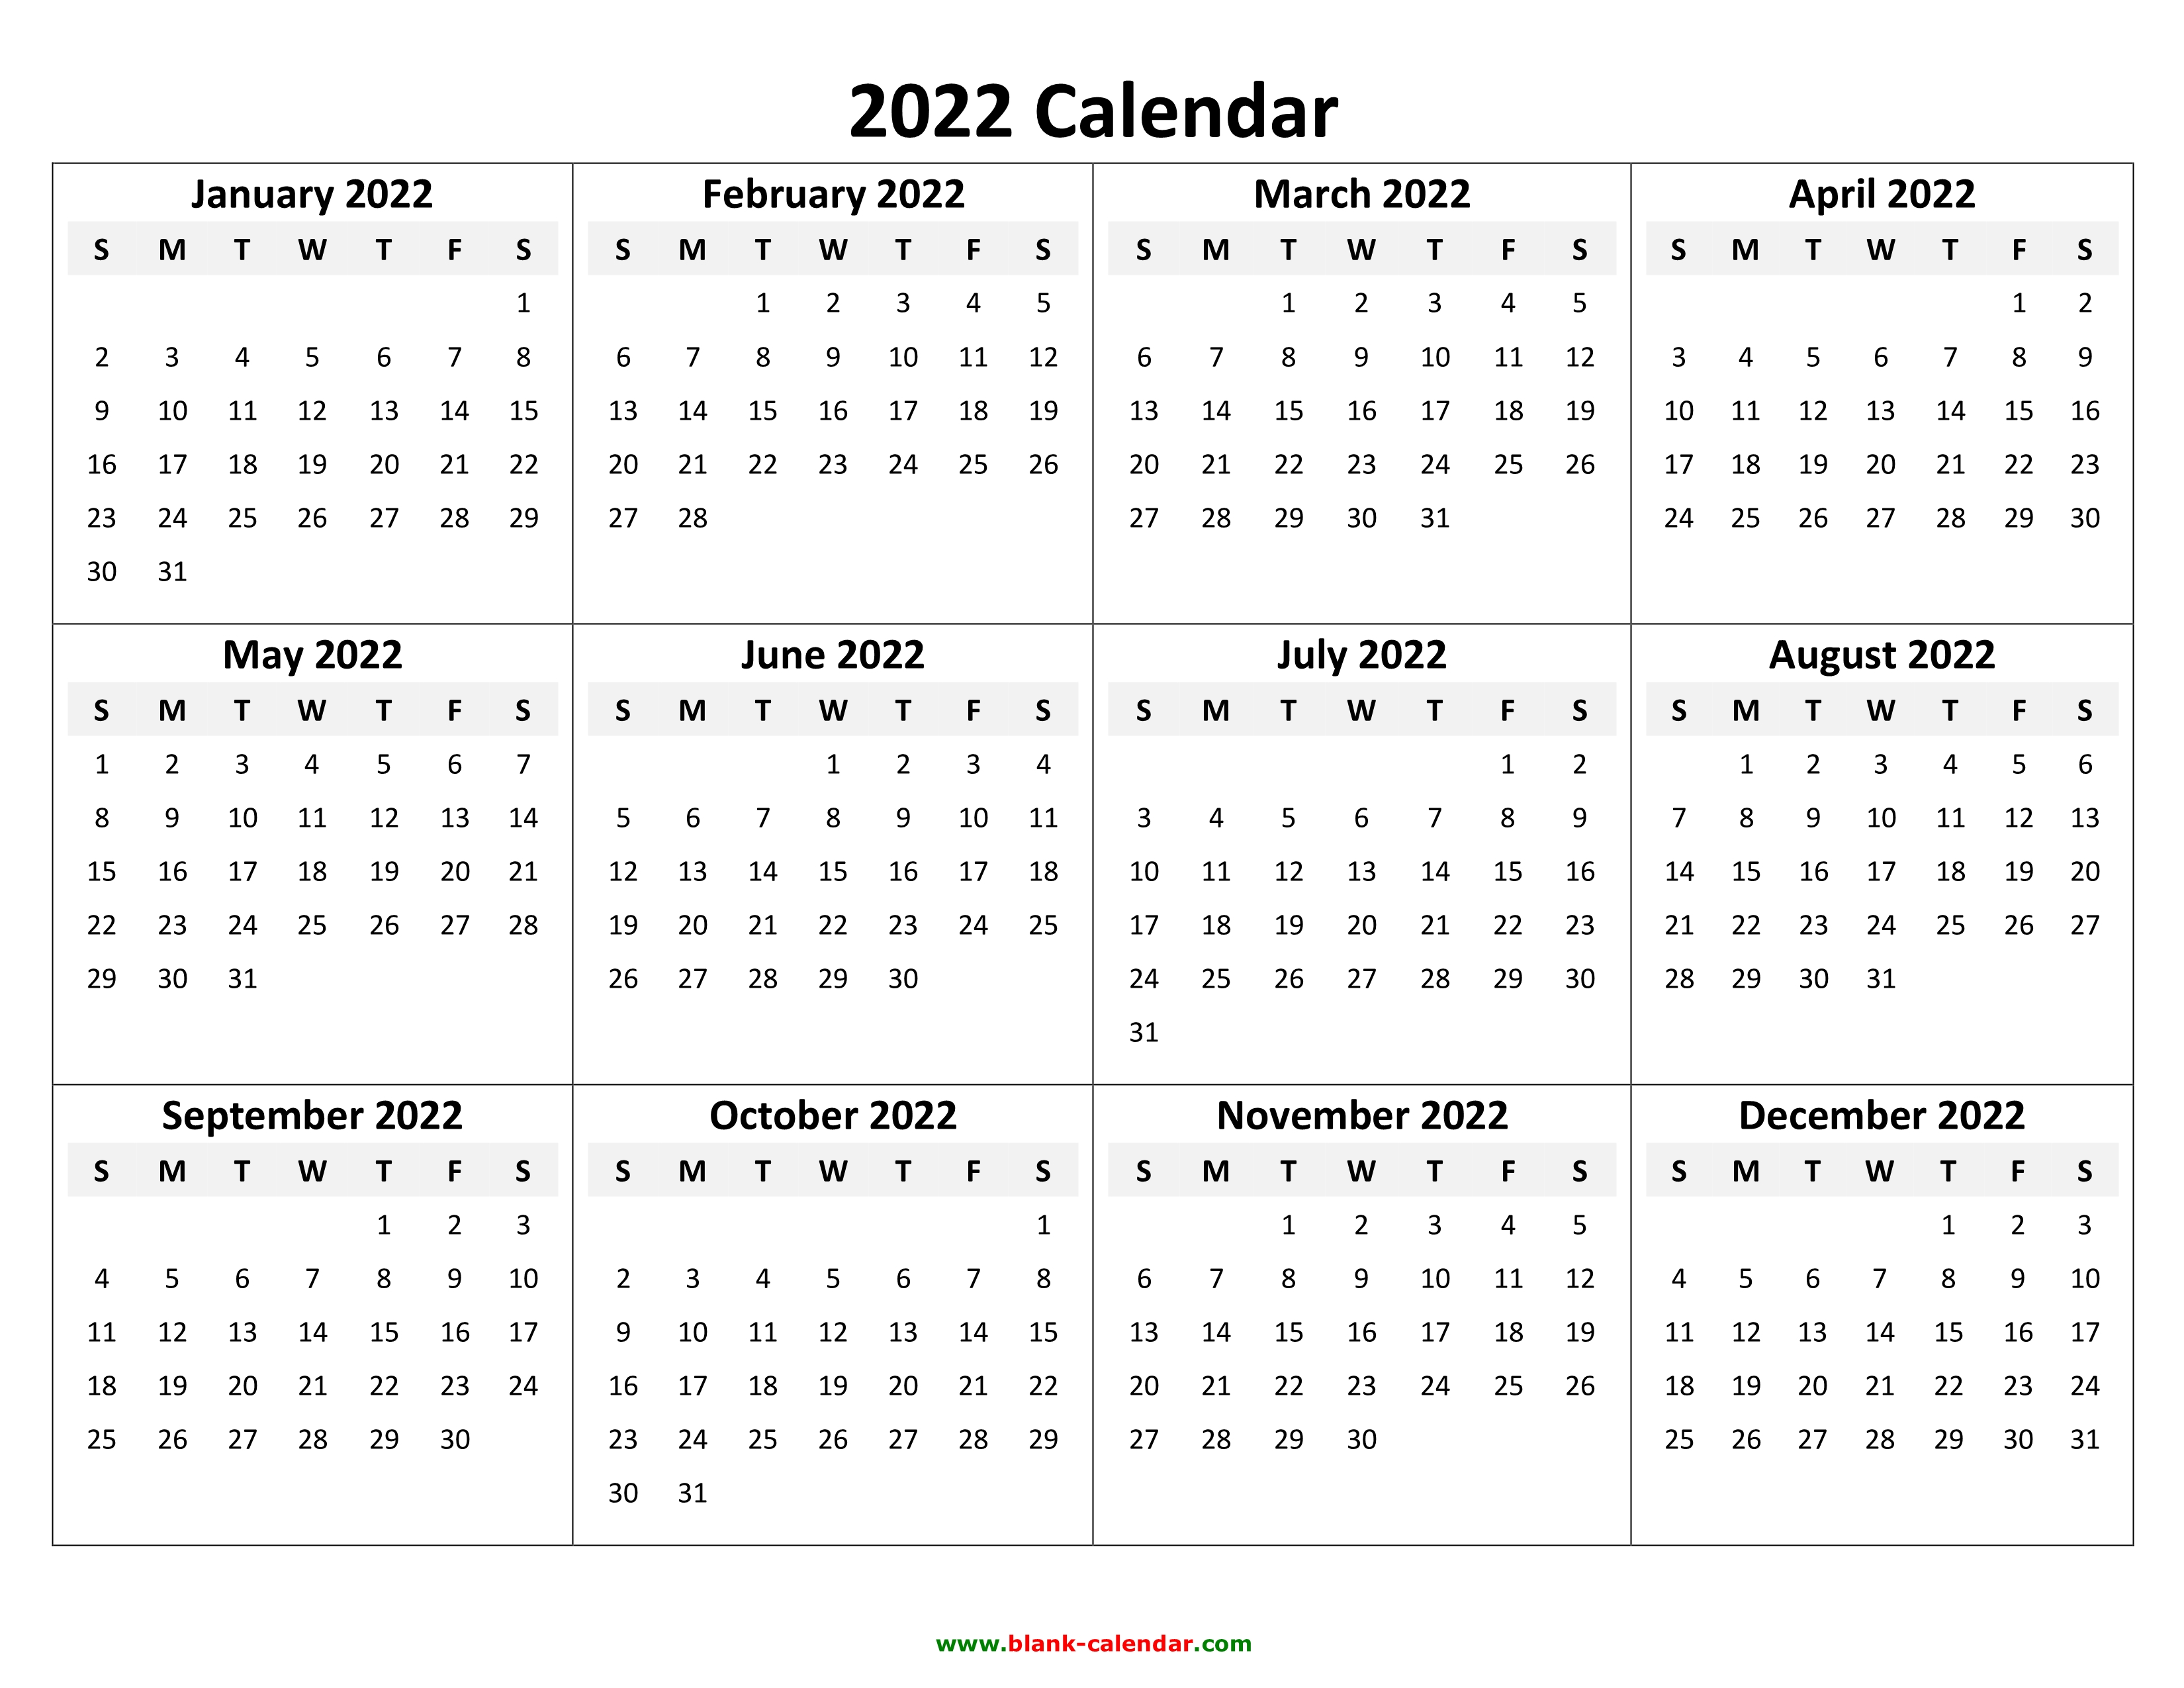 Blank 2022 Calendar Pdf.Yearly Calendar 2022 Free Download And Print